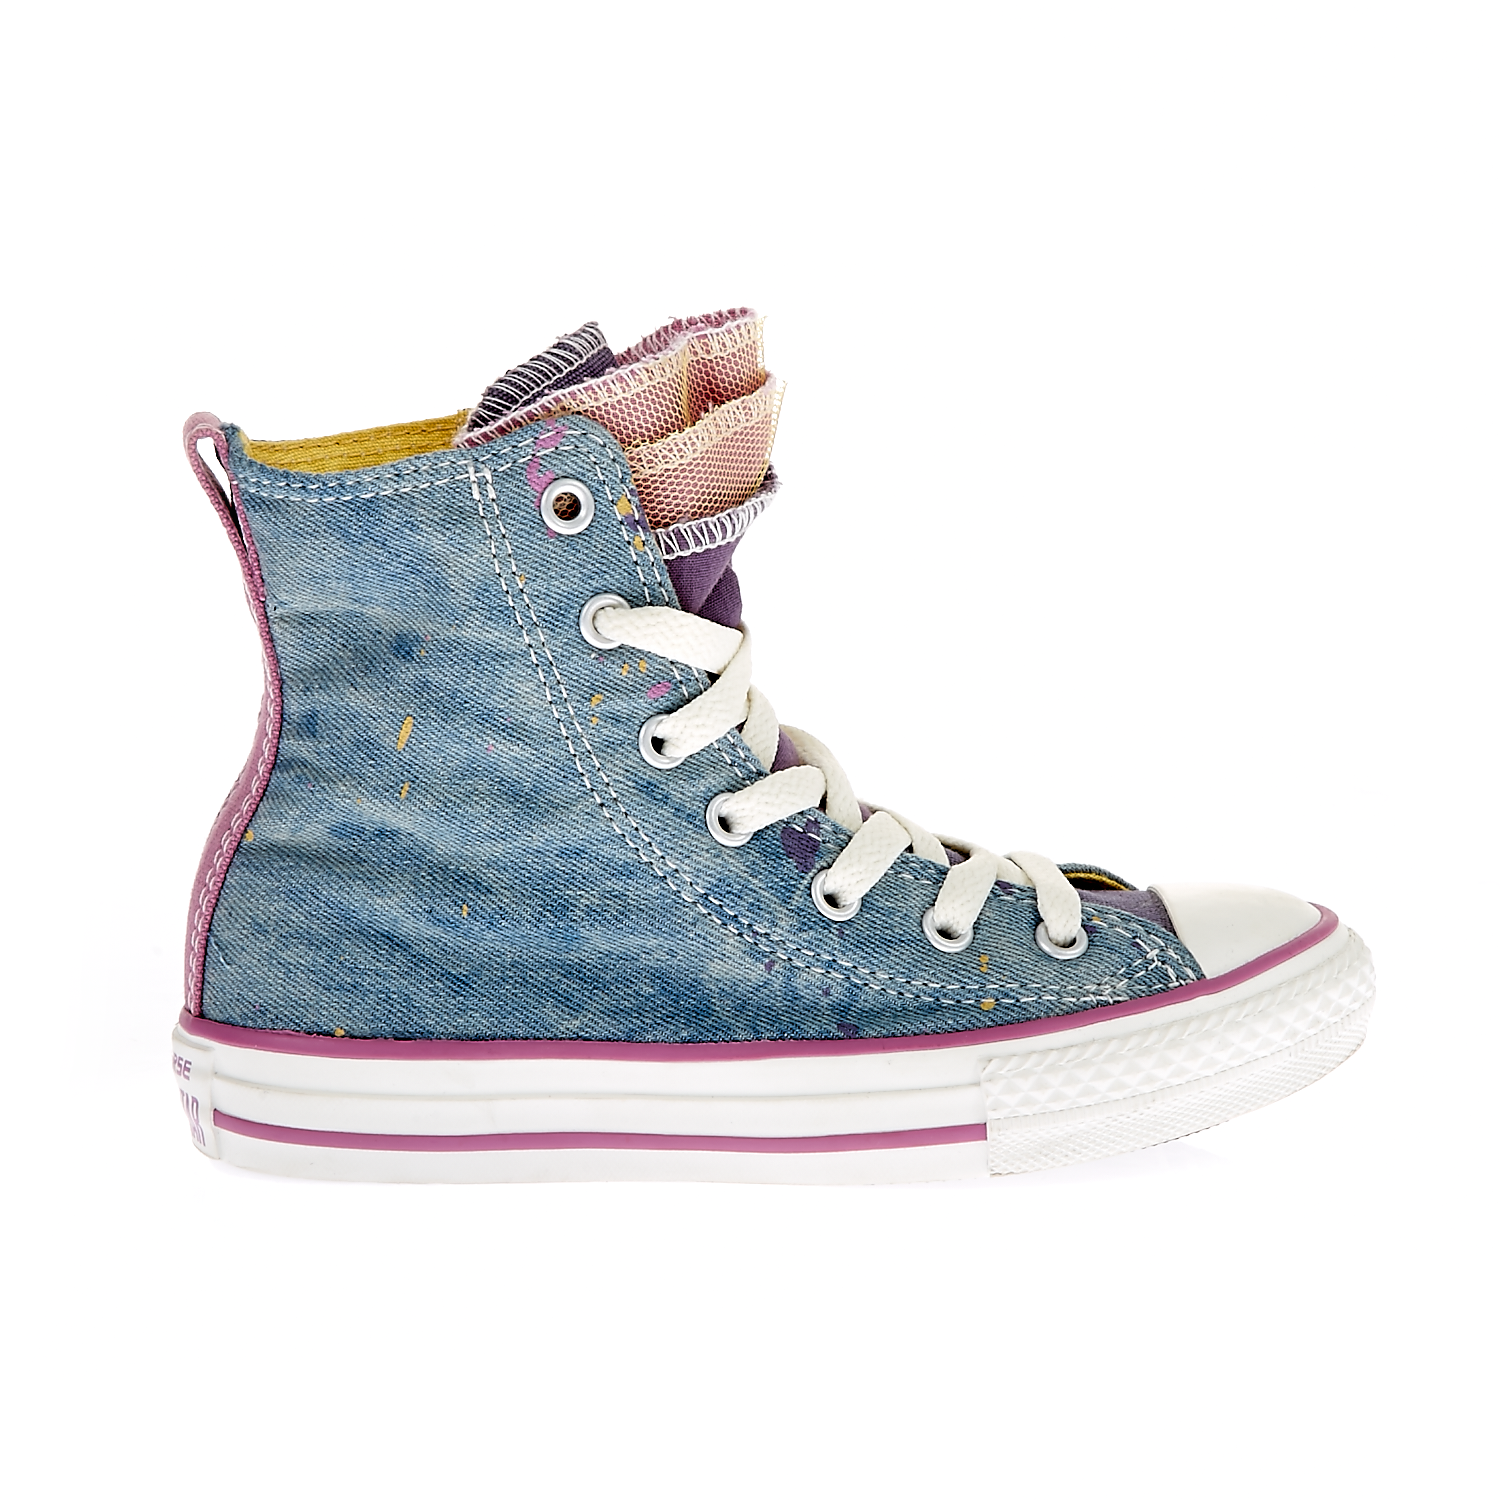 CONVERSE – Παιδικά παπούτσια Chuck Taylor All Star Party Hi μπλε